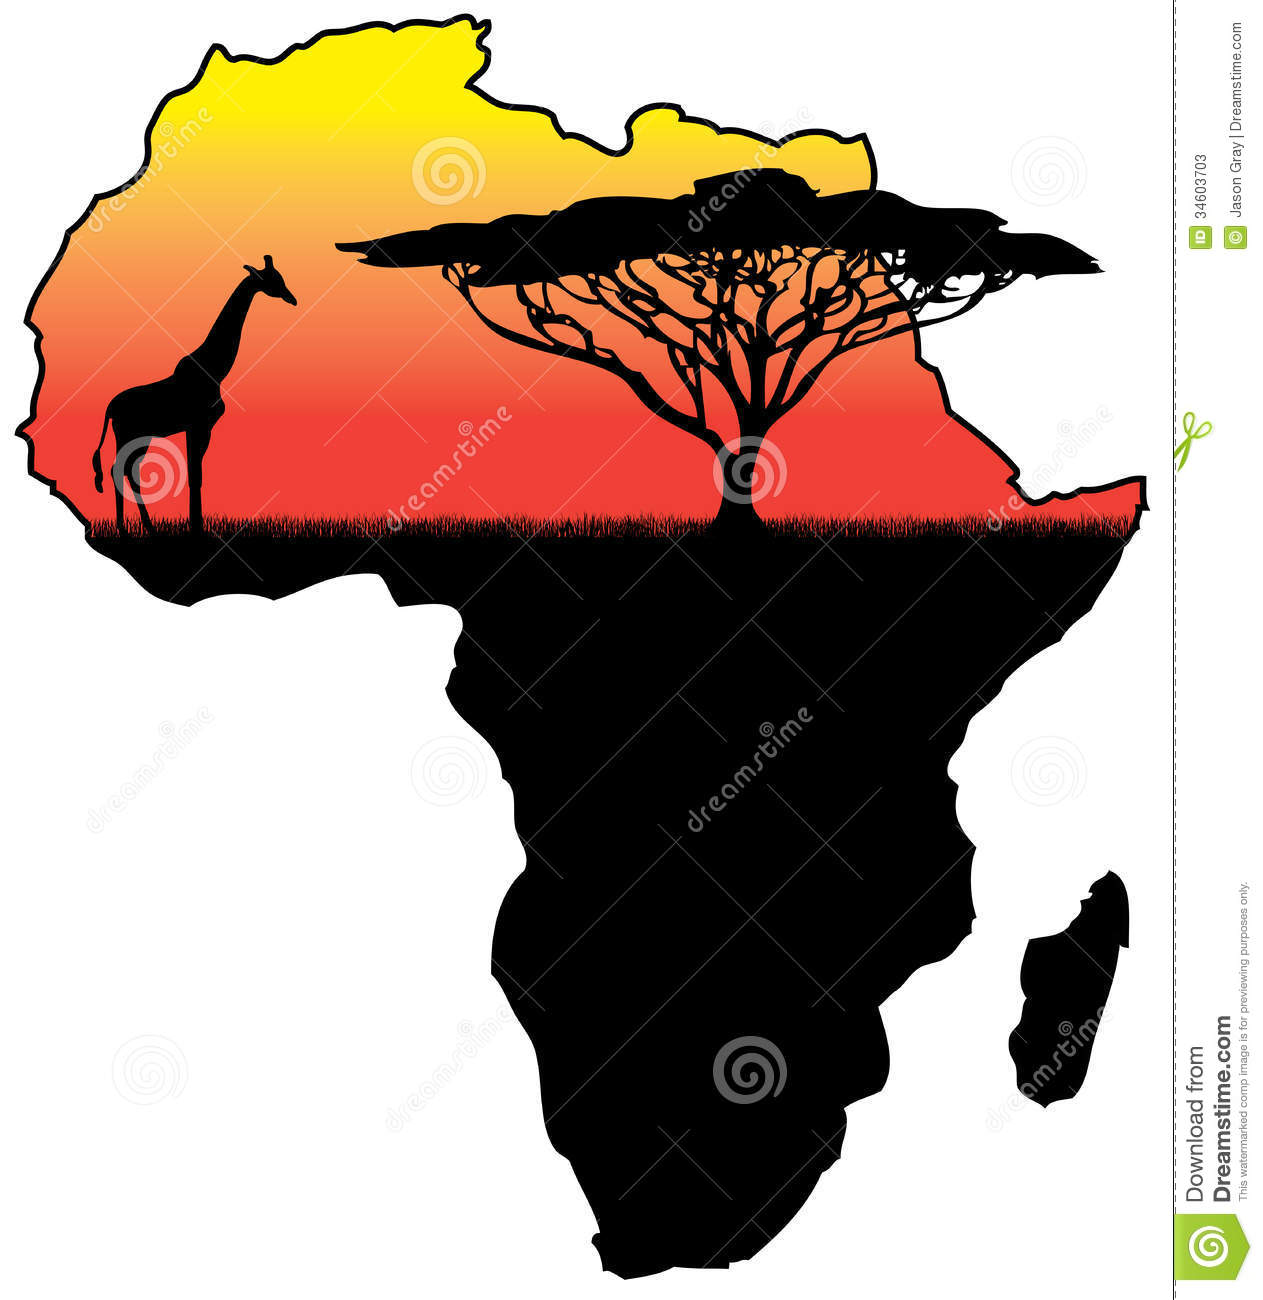 Africa silhouette stock illustration. Image of kenya ...